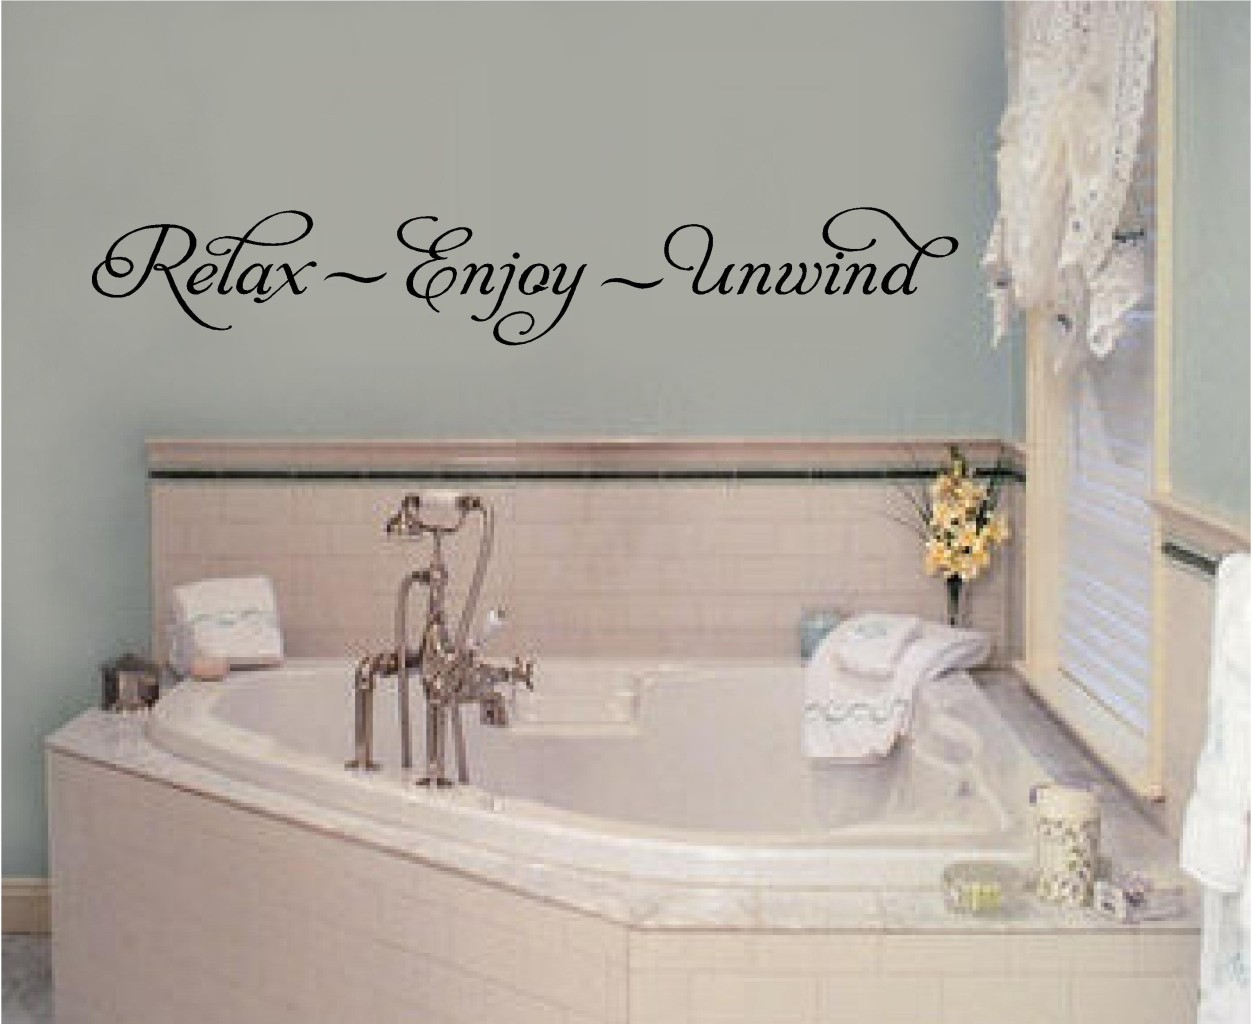 Relax enjoy unwind vinyl wall decal stickers letters for Bathroom wall decor quotes